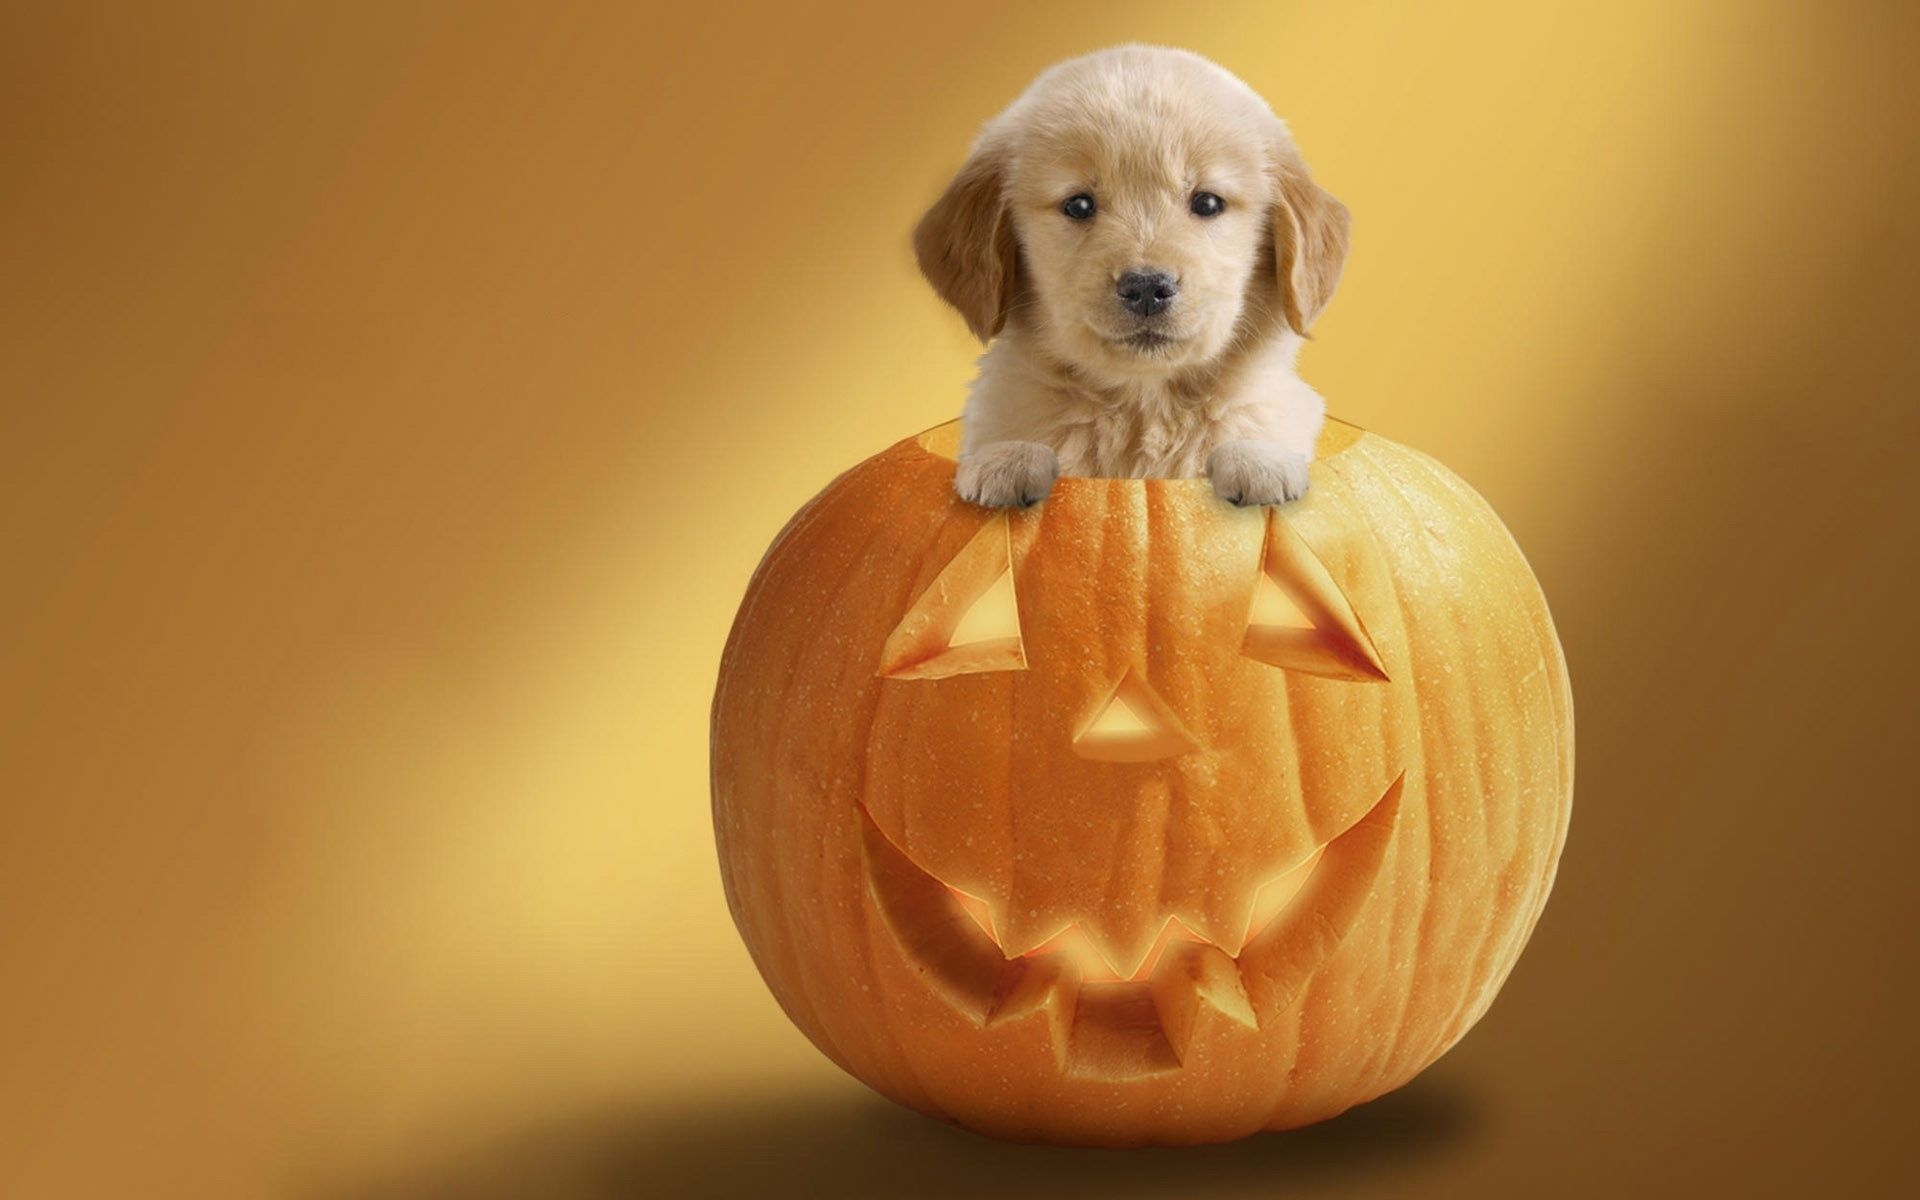 Dog In Pumpkin Wallpapers And Images Wallpapers Halloween Puppy Dog Halloween Cute Puppies